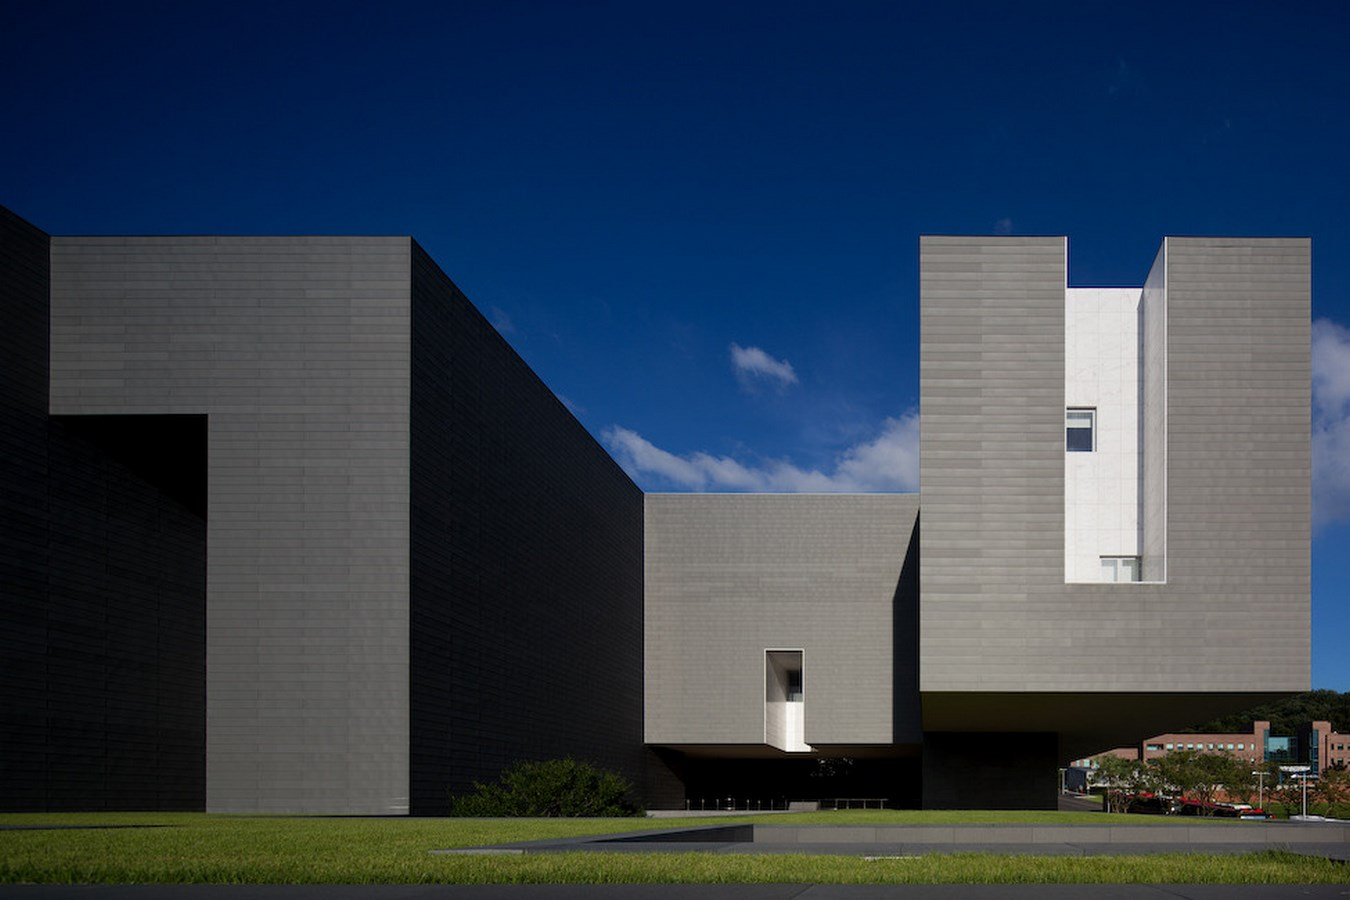 15 Projects by Alvaro Siza every Architect Must Visit! - Amore Pacific Research & Design Center